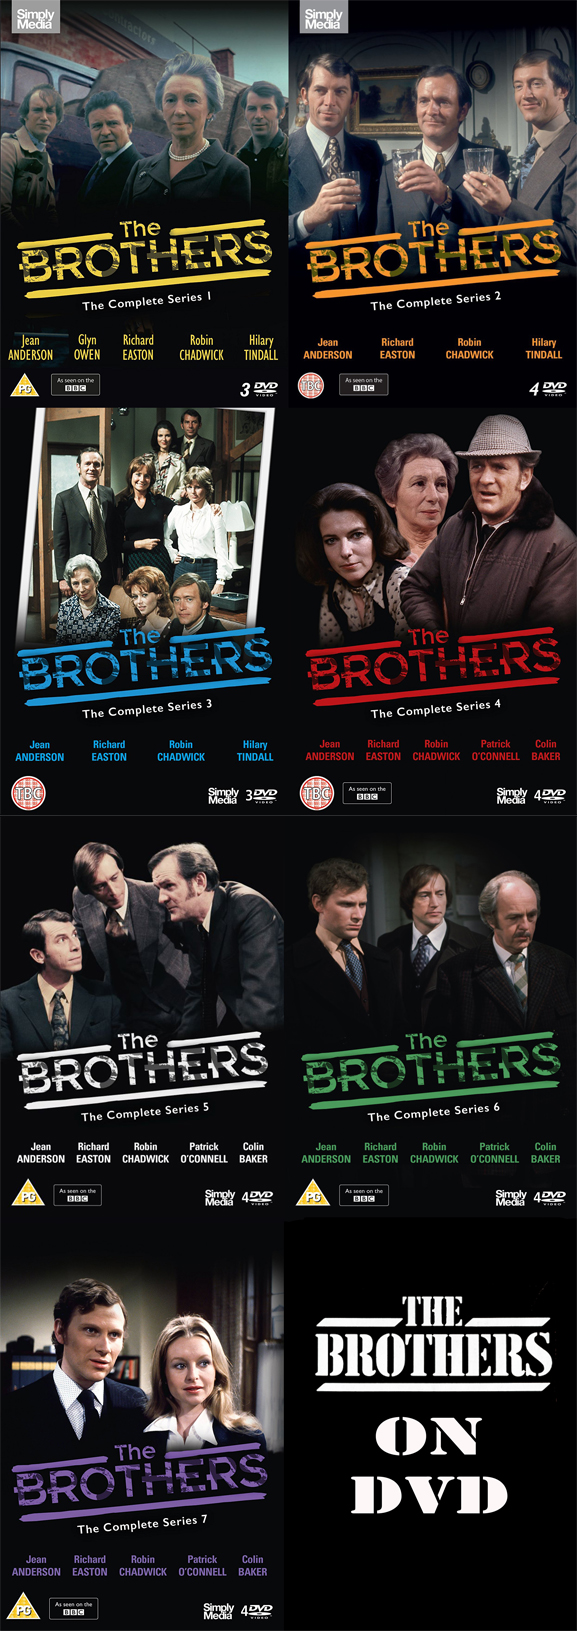 Colin Baker Online | The Brothers